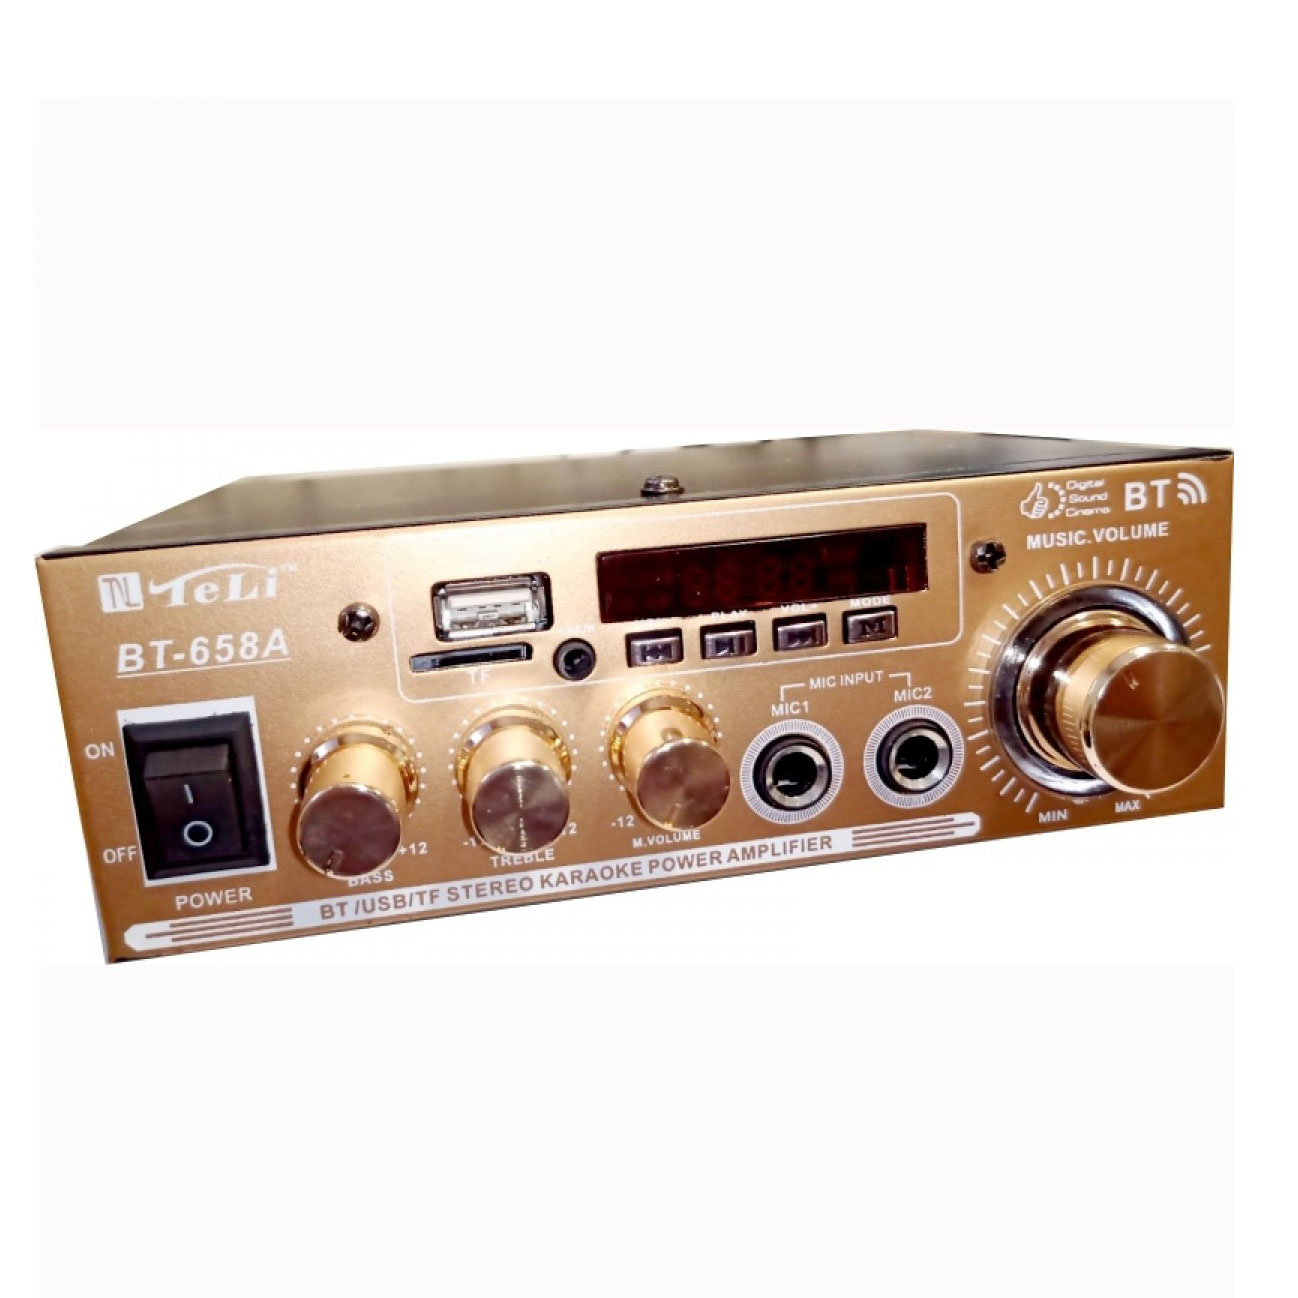 Ενισχυτής Audio Teli BT-658A ,Karaoke, Radio, Bluetooth, Usb ,TF card, 30W με remote control